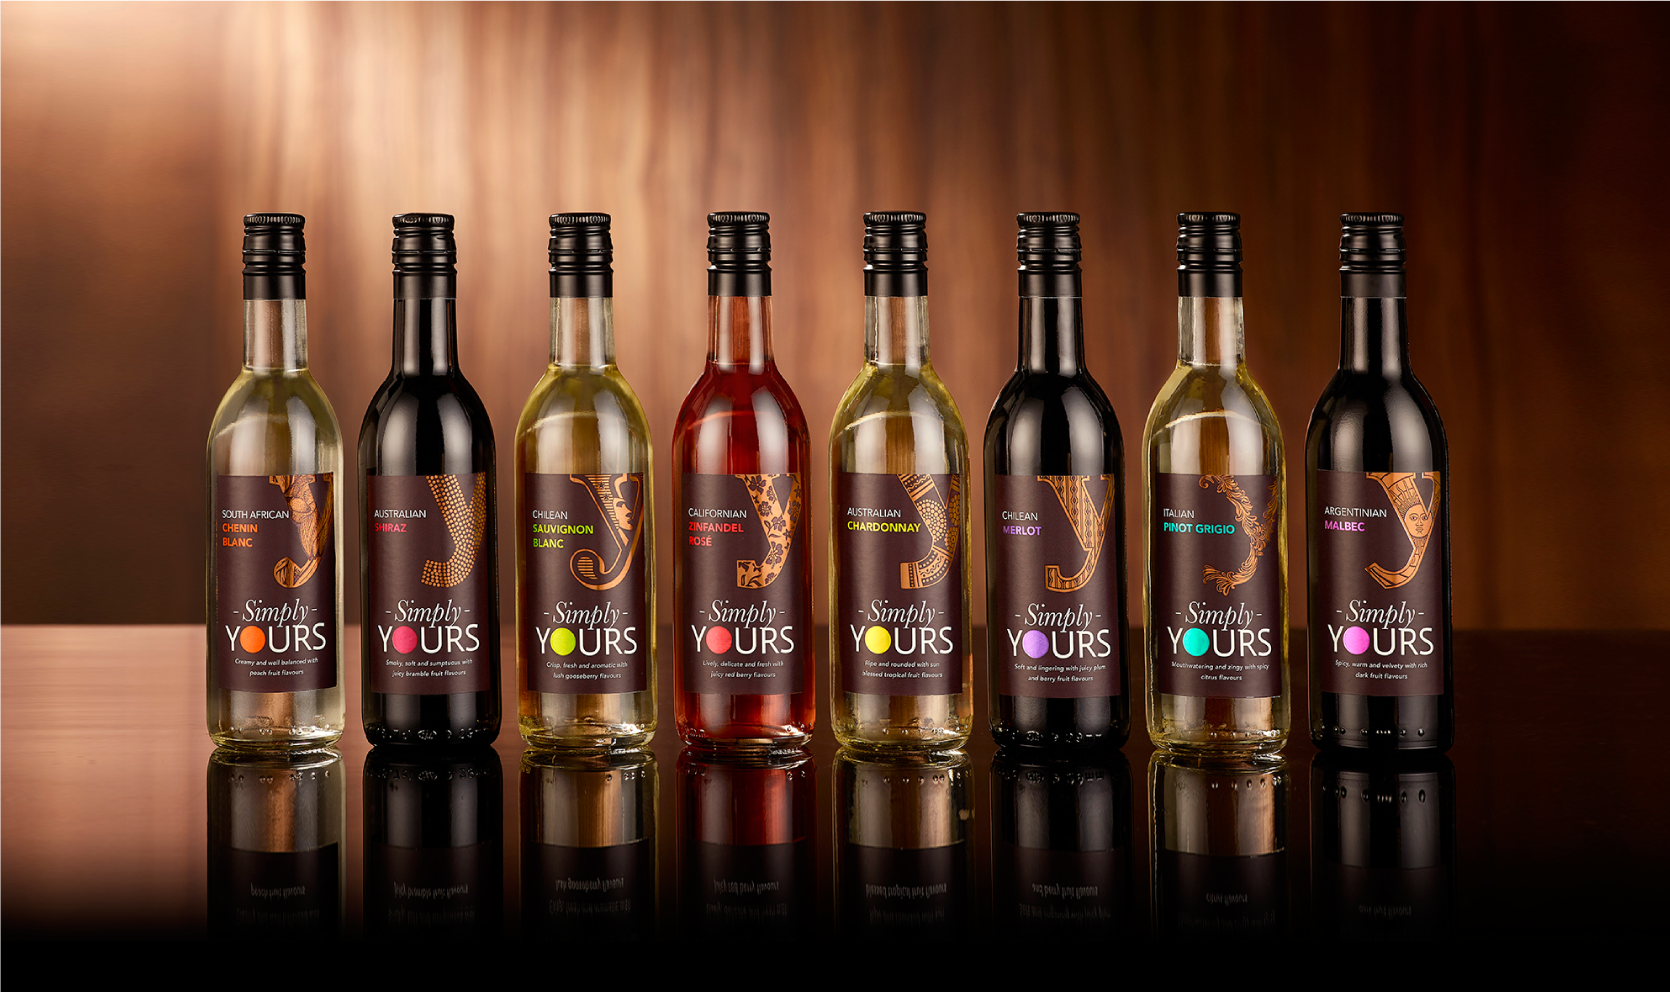 simply your wines